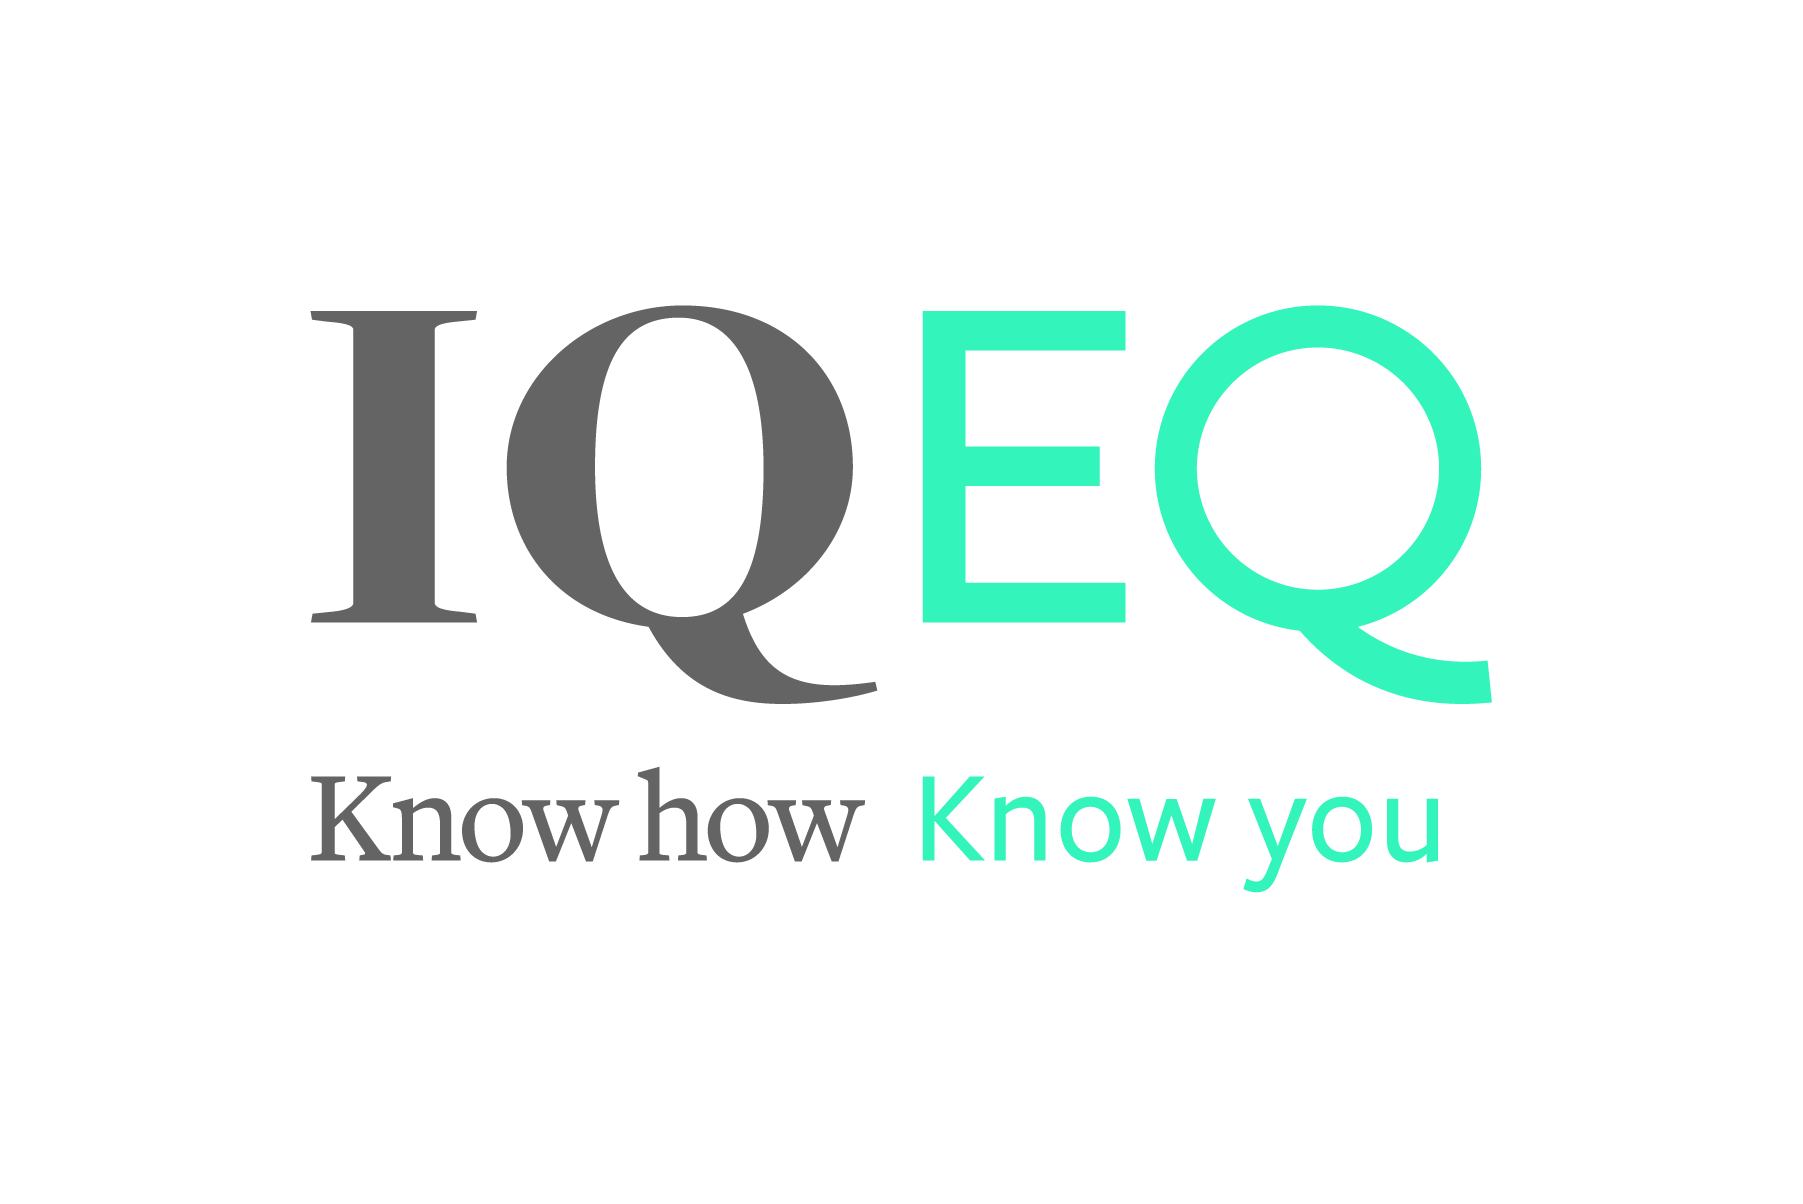 IQ-EQ_Lockup_Stacked_RGB-png